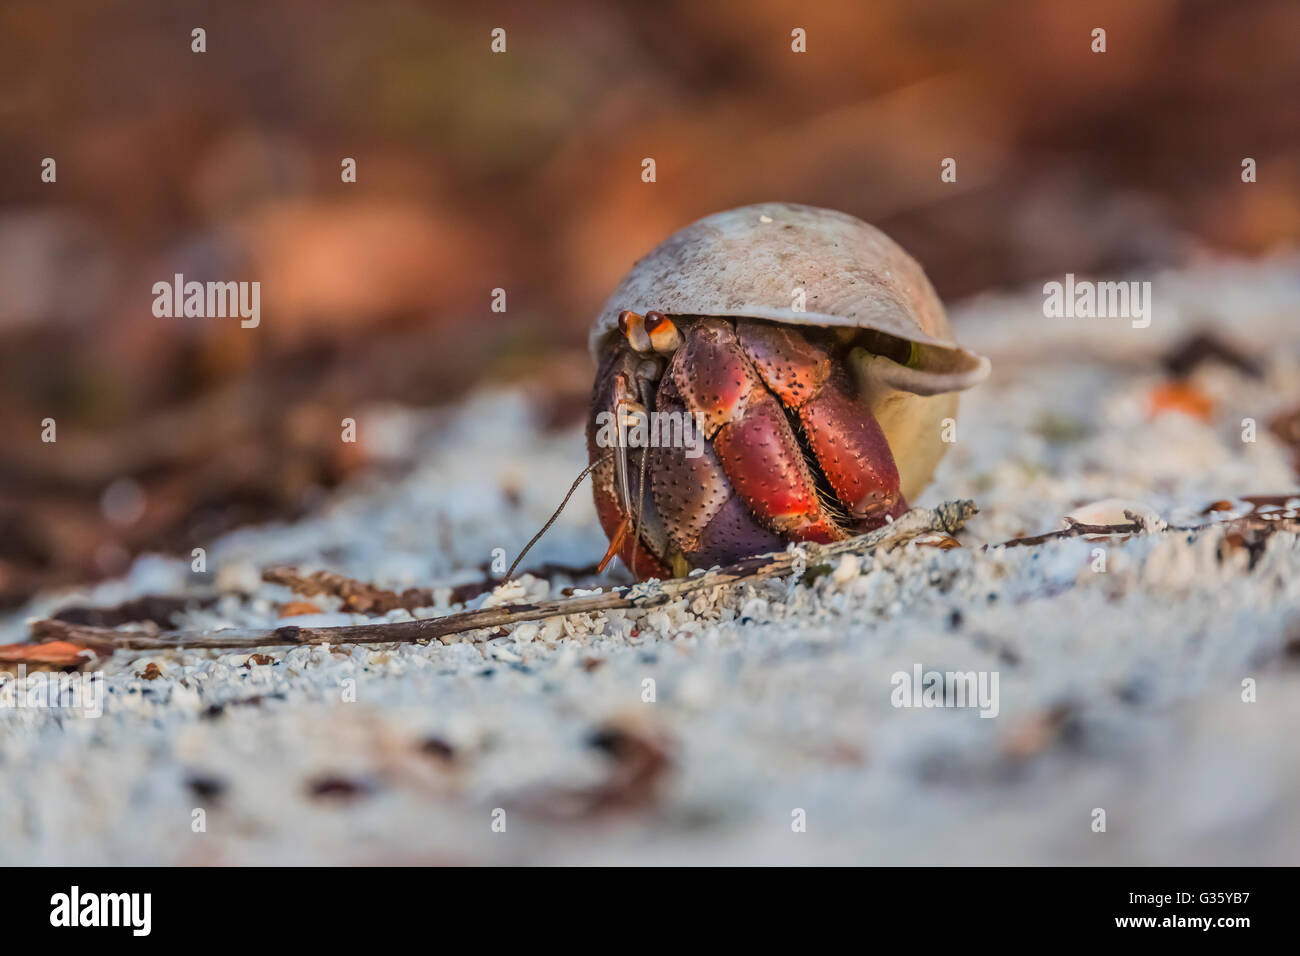 Carribean Hermit Crab, Coenobita clypeatus, foraging in its appropriated whelk shell, Dry Tortugas National Park, - Stock Image